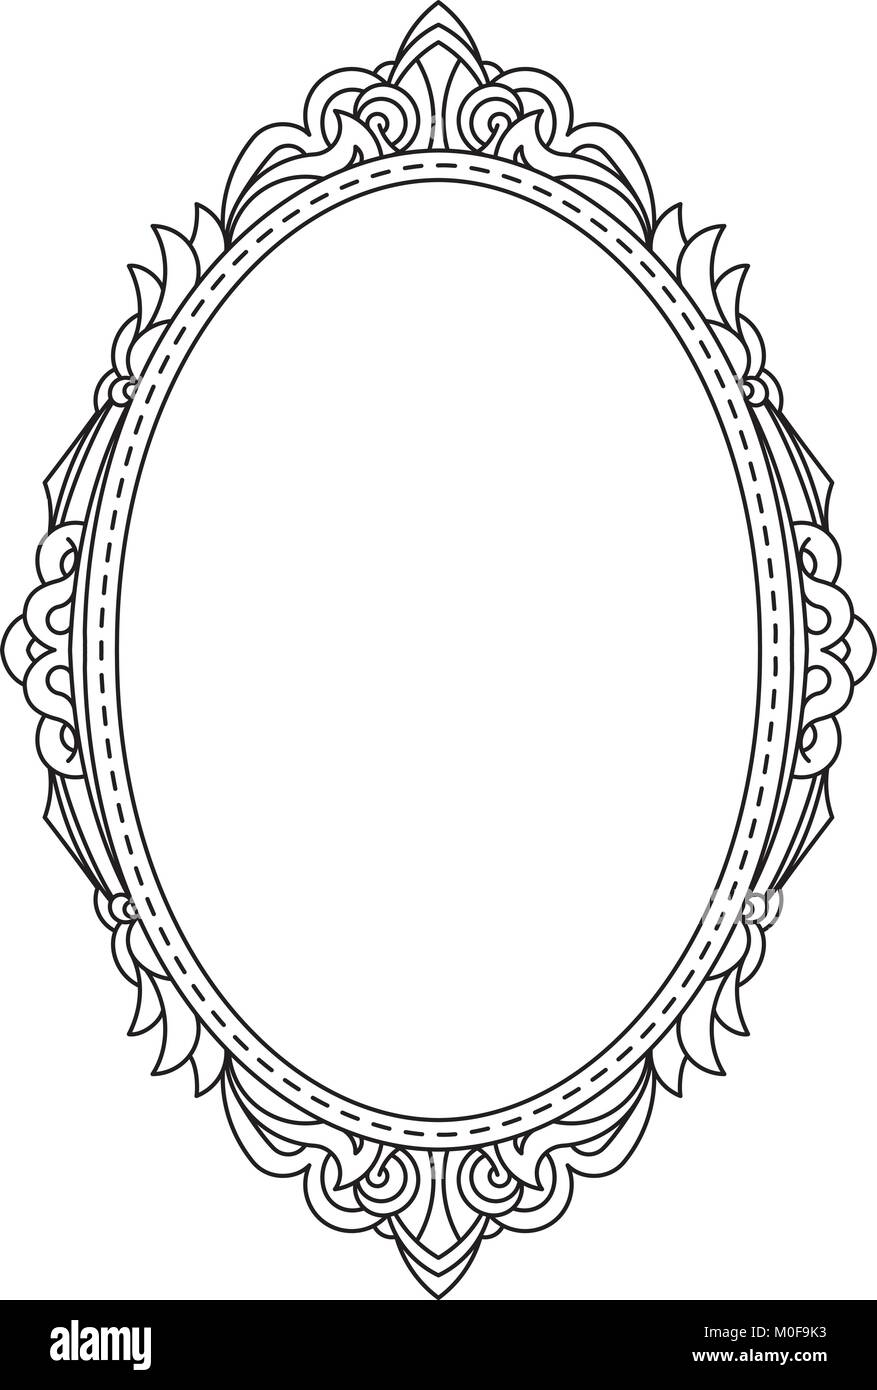 Antique Vintage Oval Frame With Blank Space For Text May Be Used As Greeting Card Or Invitation Vector Illustration Template In Retro Style